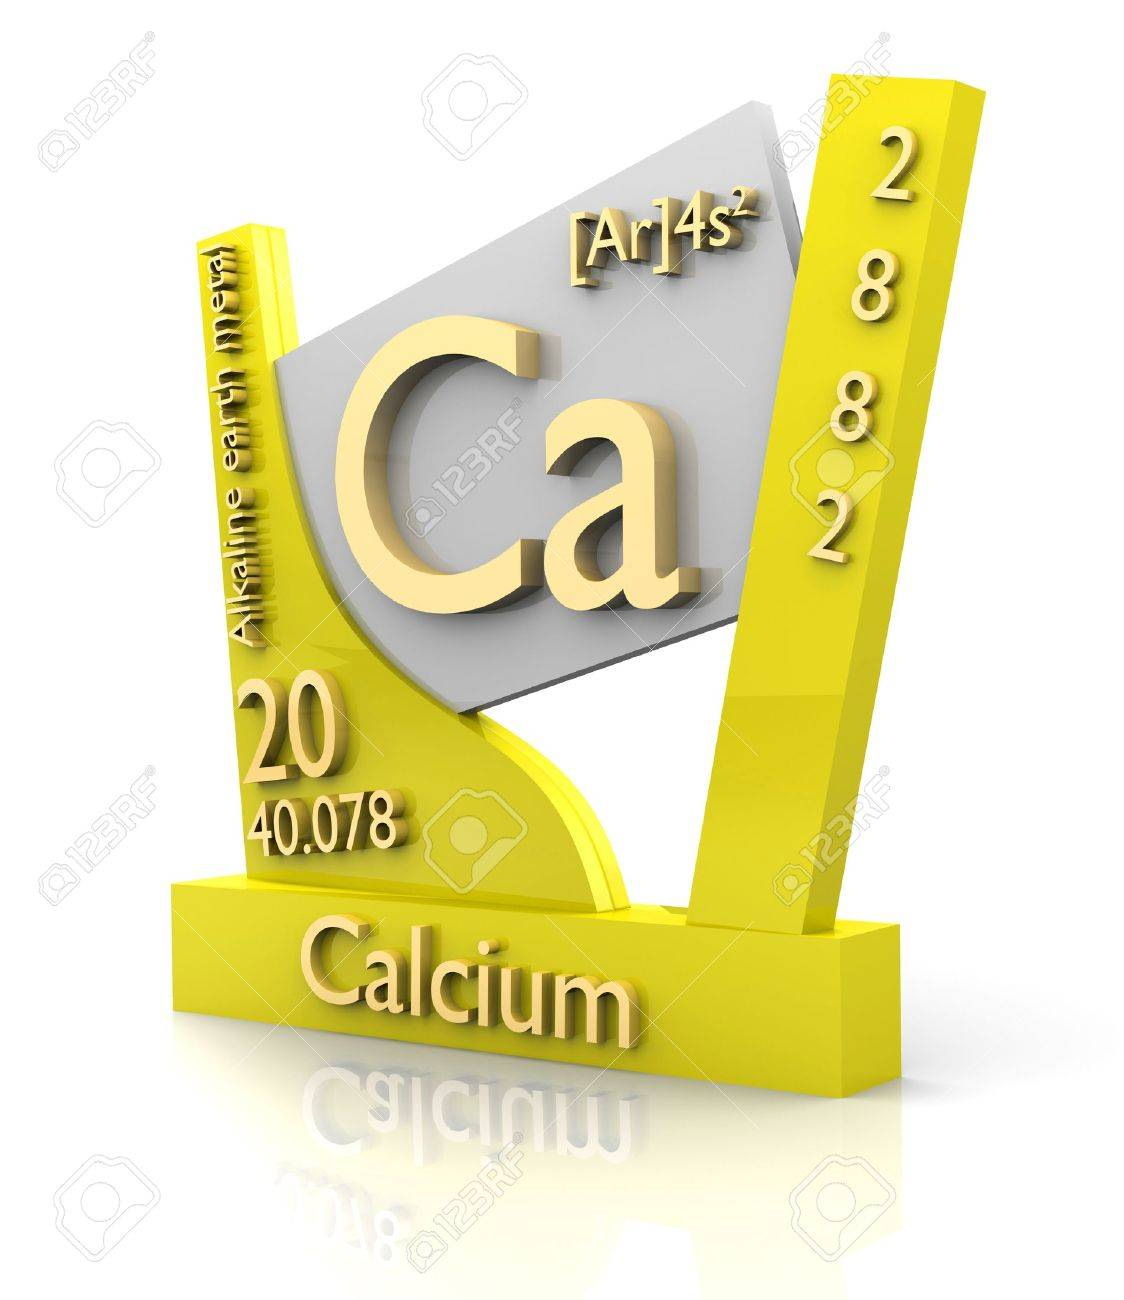 Calcium form periodic table of elements 3d made stock photo calcium form periodic table of elements 3d made stock photo 11297457 gamestrikefo Images